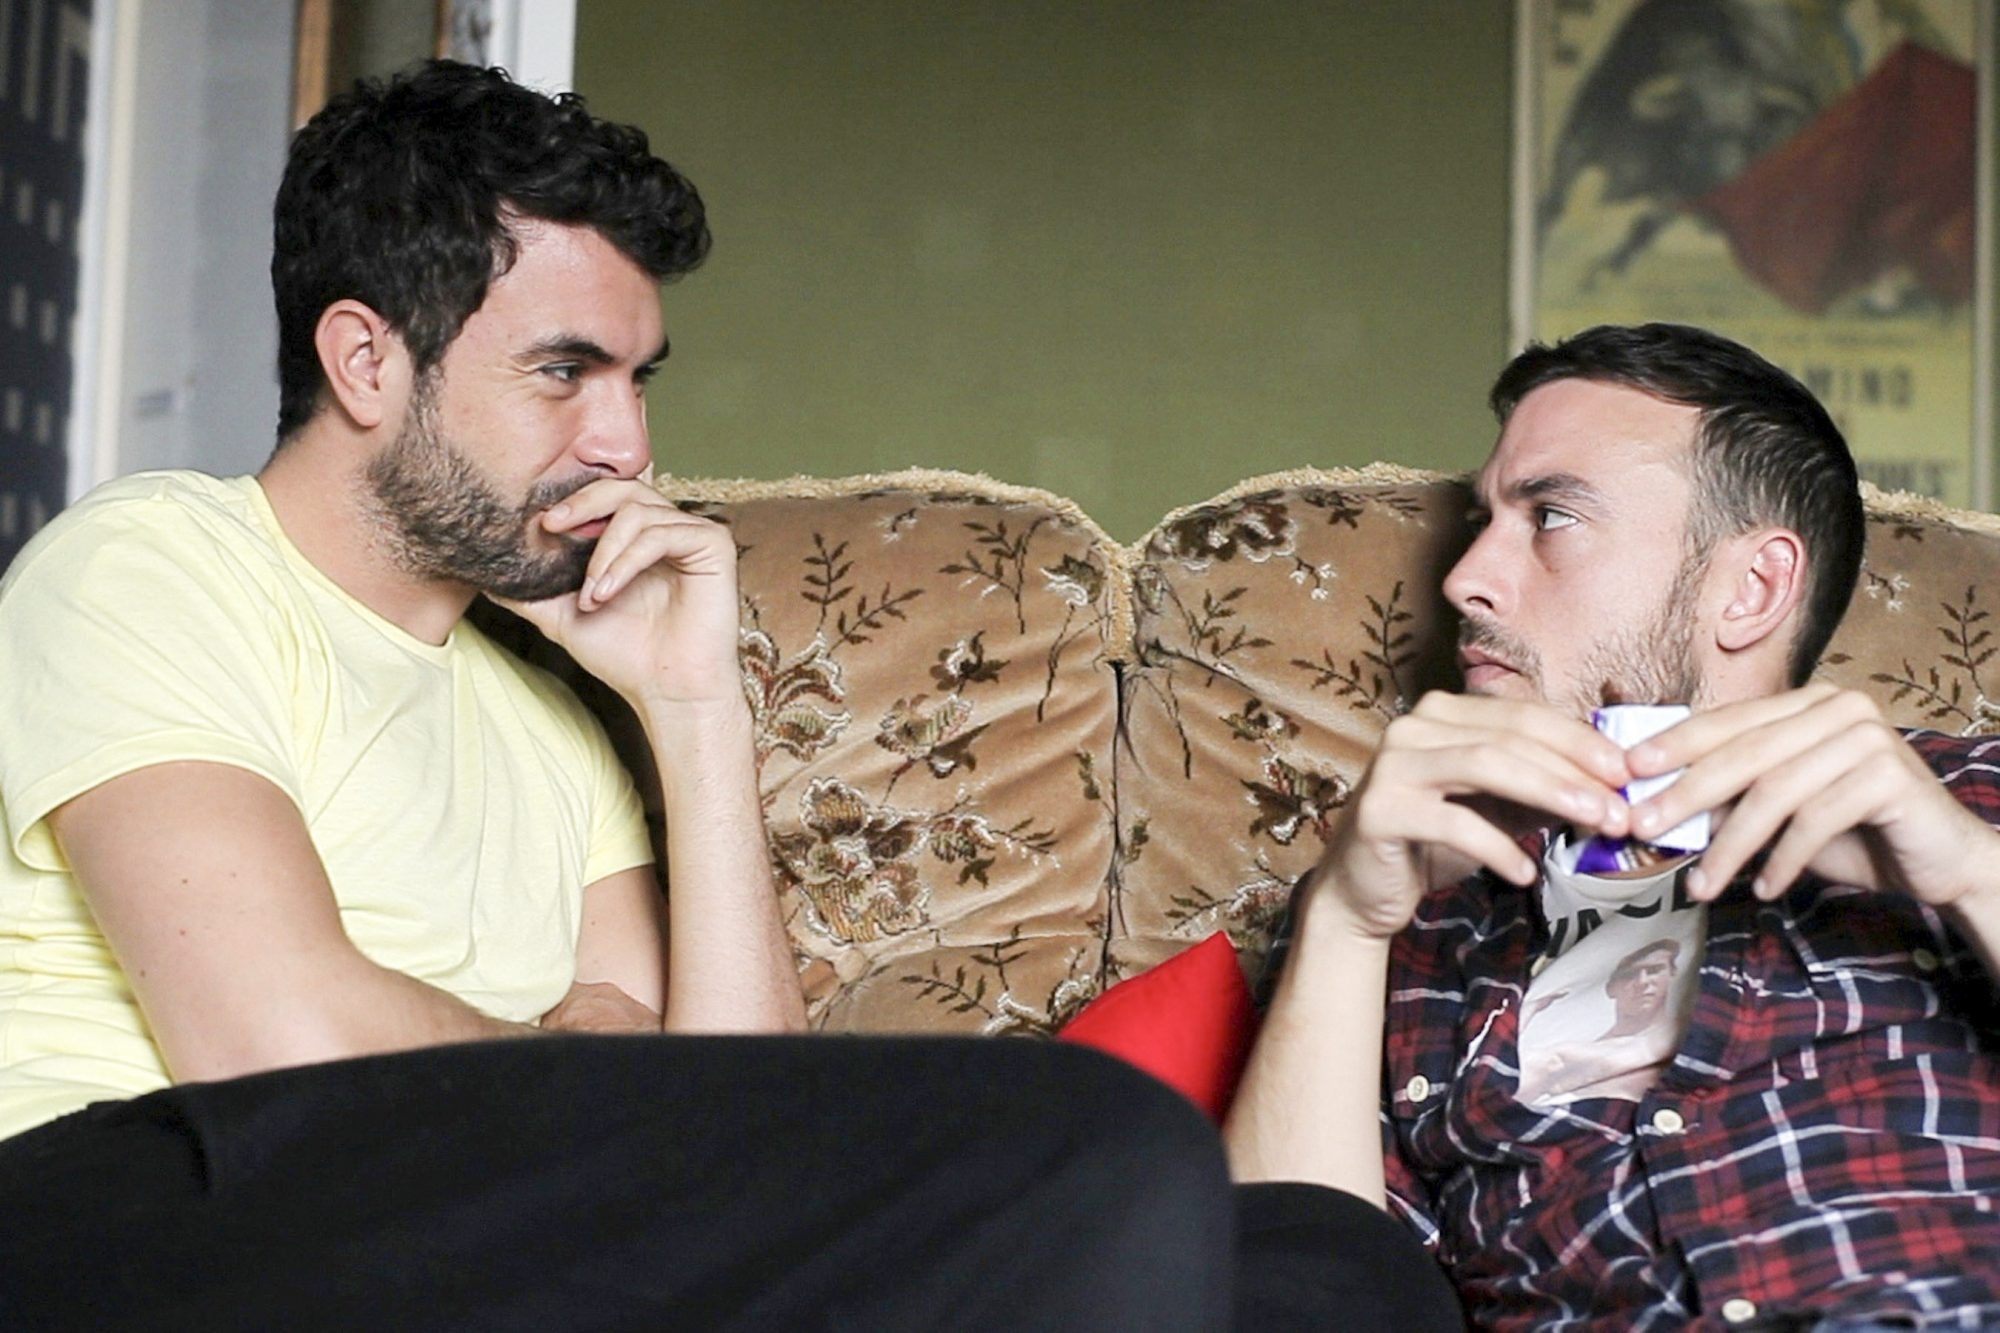 WEEKEND, Tom Cullen, Chris New, 2011. Ph: Quinnford & Scout/©Sundance Selects/courtesy Everett Colle